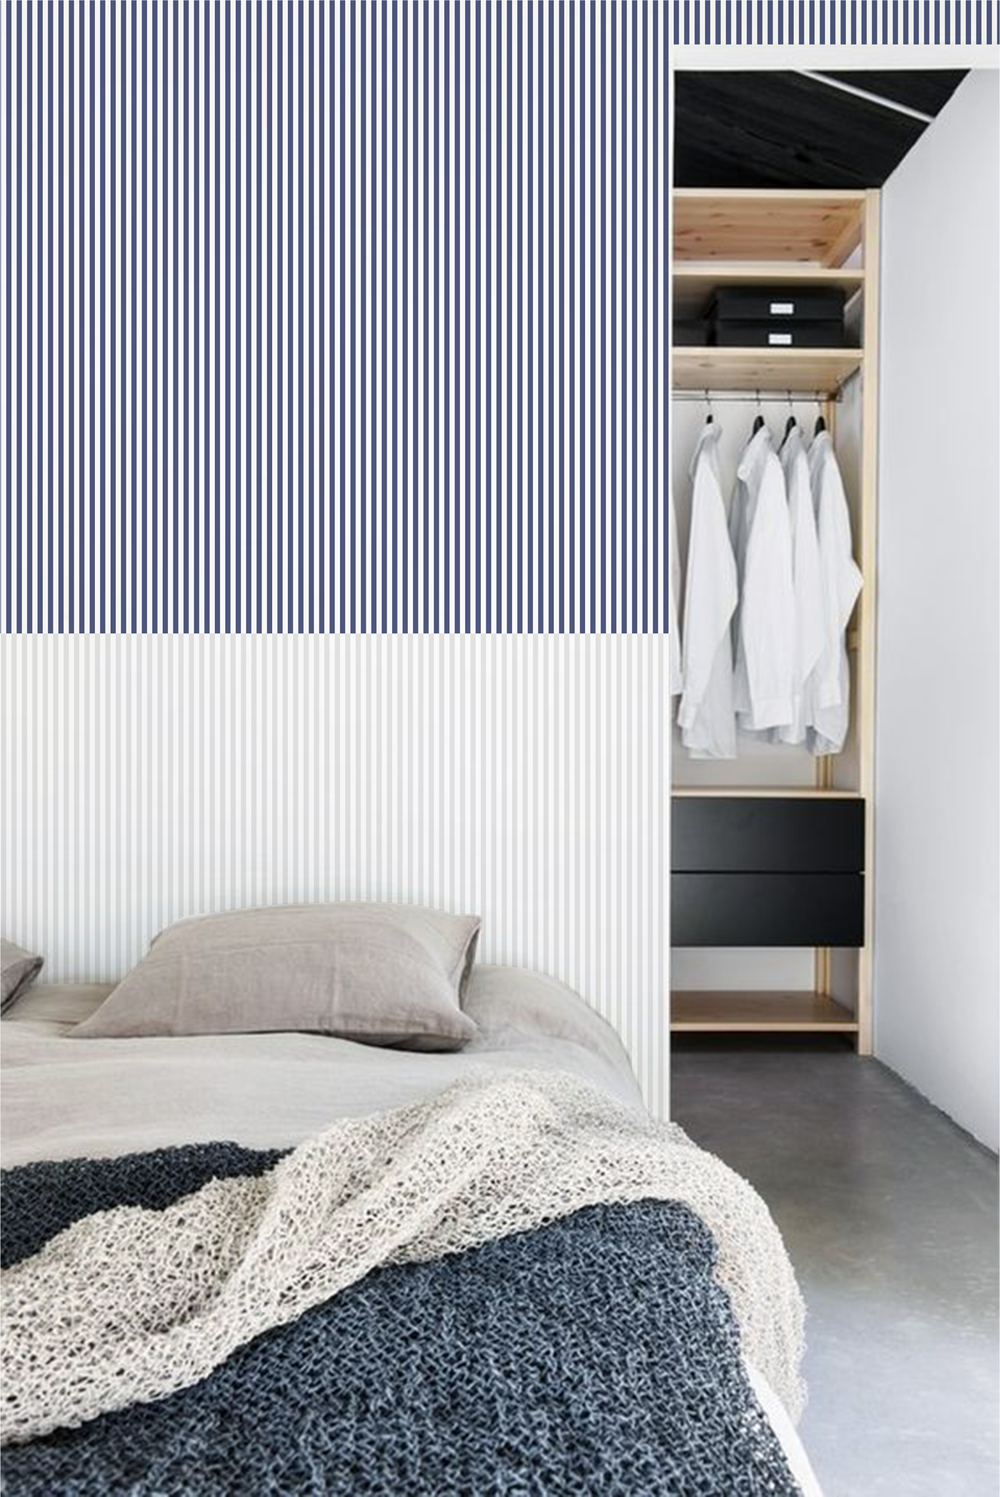 quarto-closet-papel-listras-2papeis-housed-wallpaper2.png